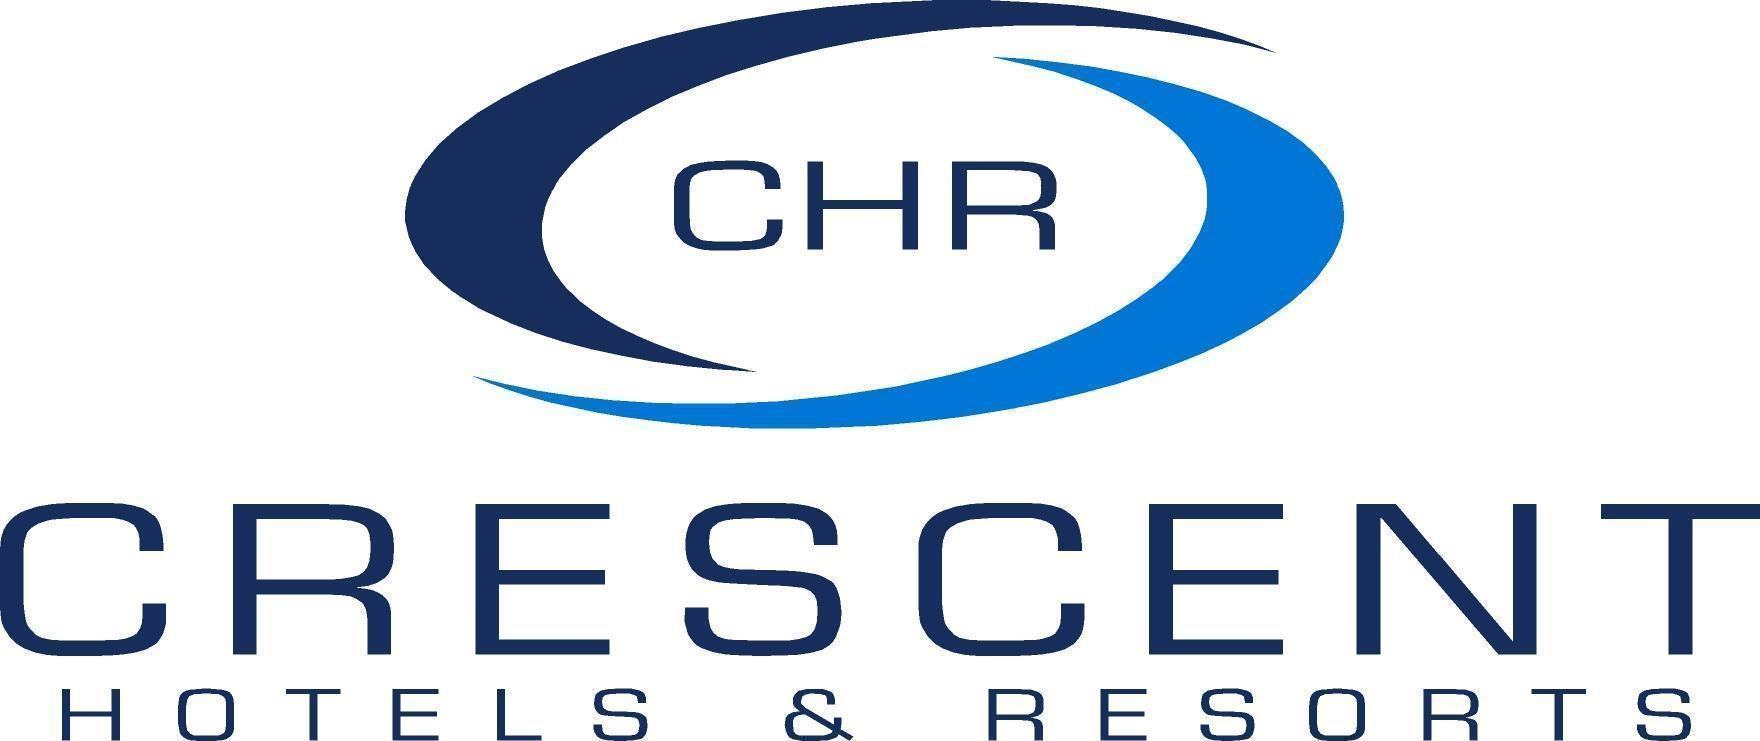 Crescent Hotels & Resorts, LLC's Competitors, Revenue, Number of Employees, Funding, Acquisitions & News - Owler Company Profile